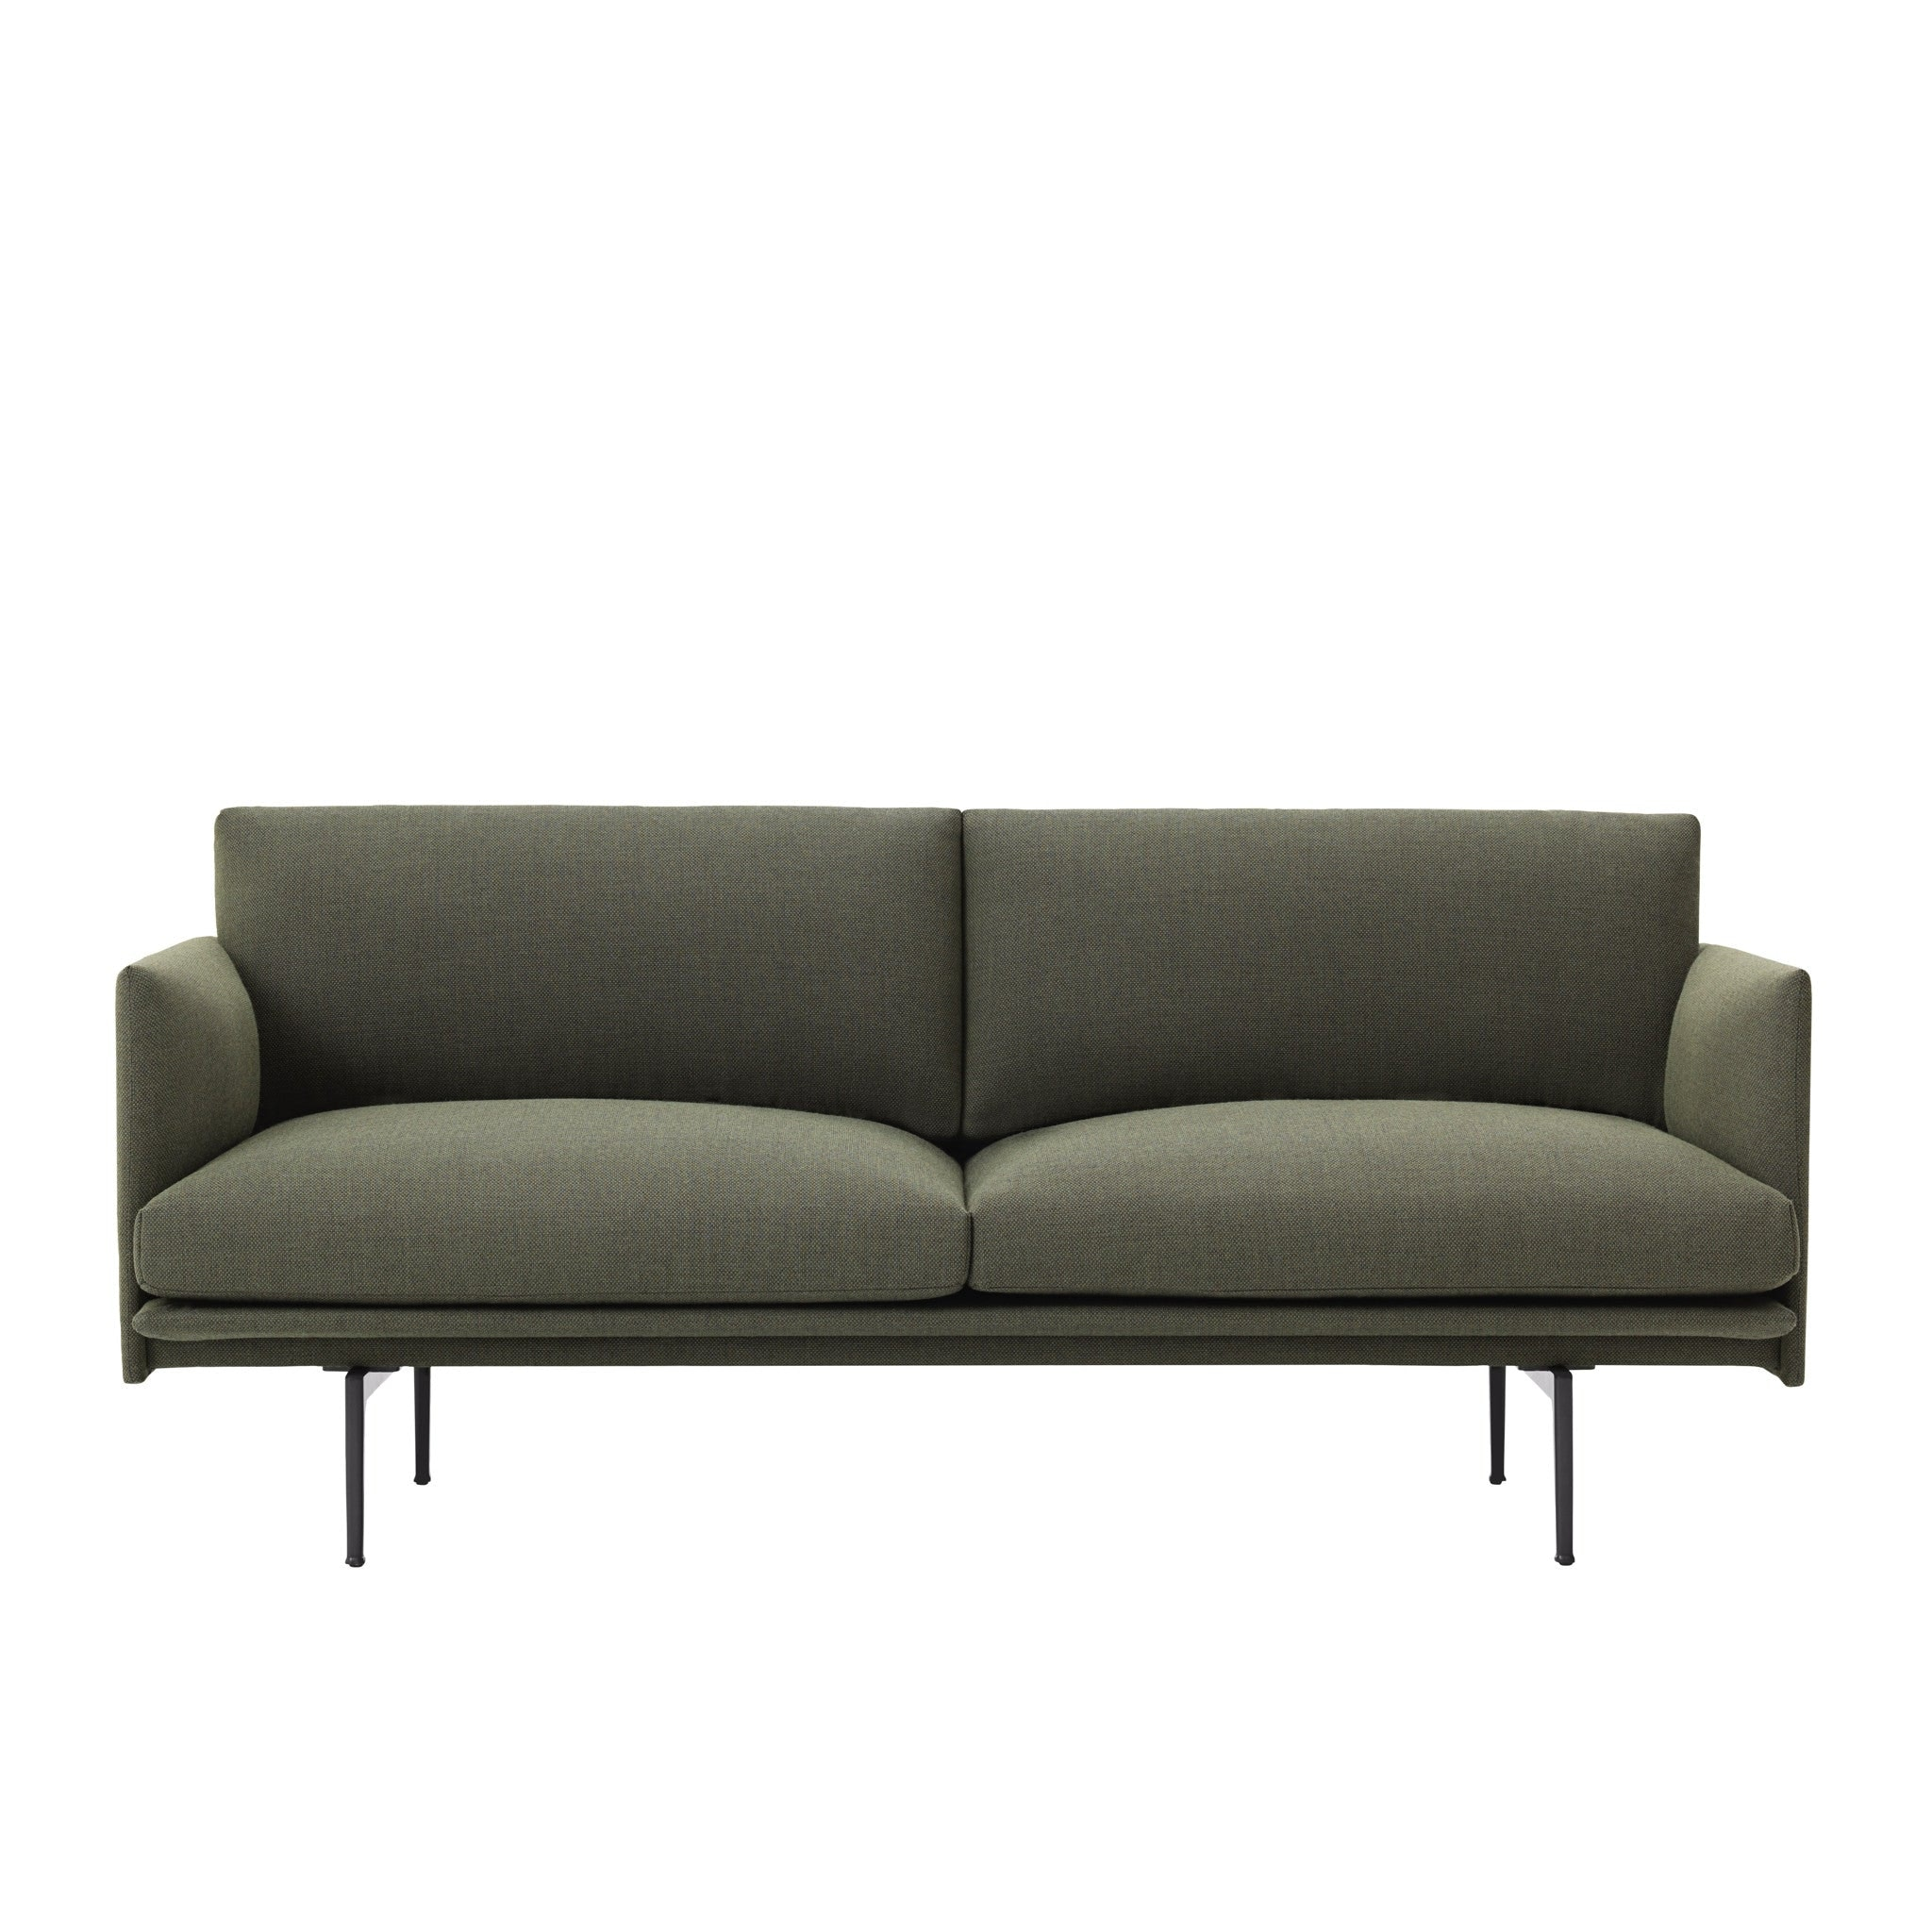 Outline Sofa by Muuto